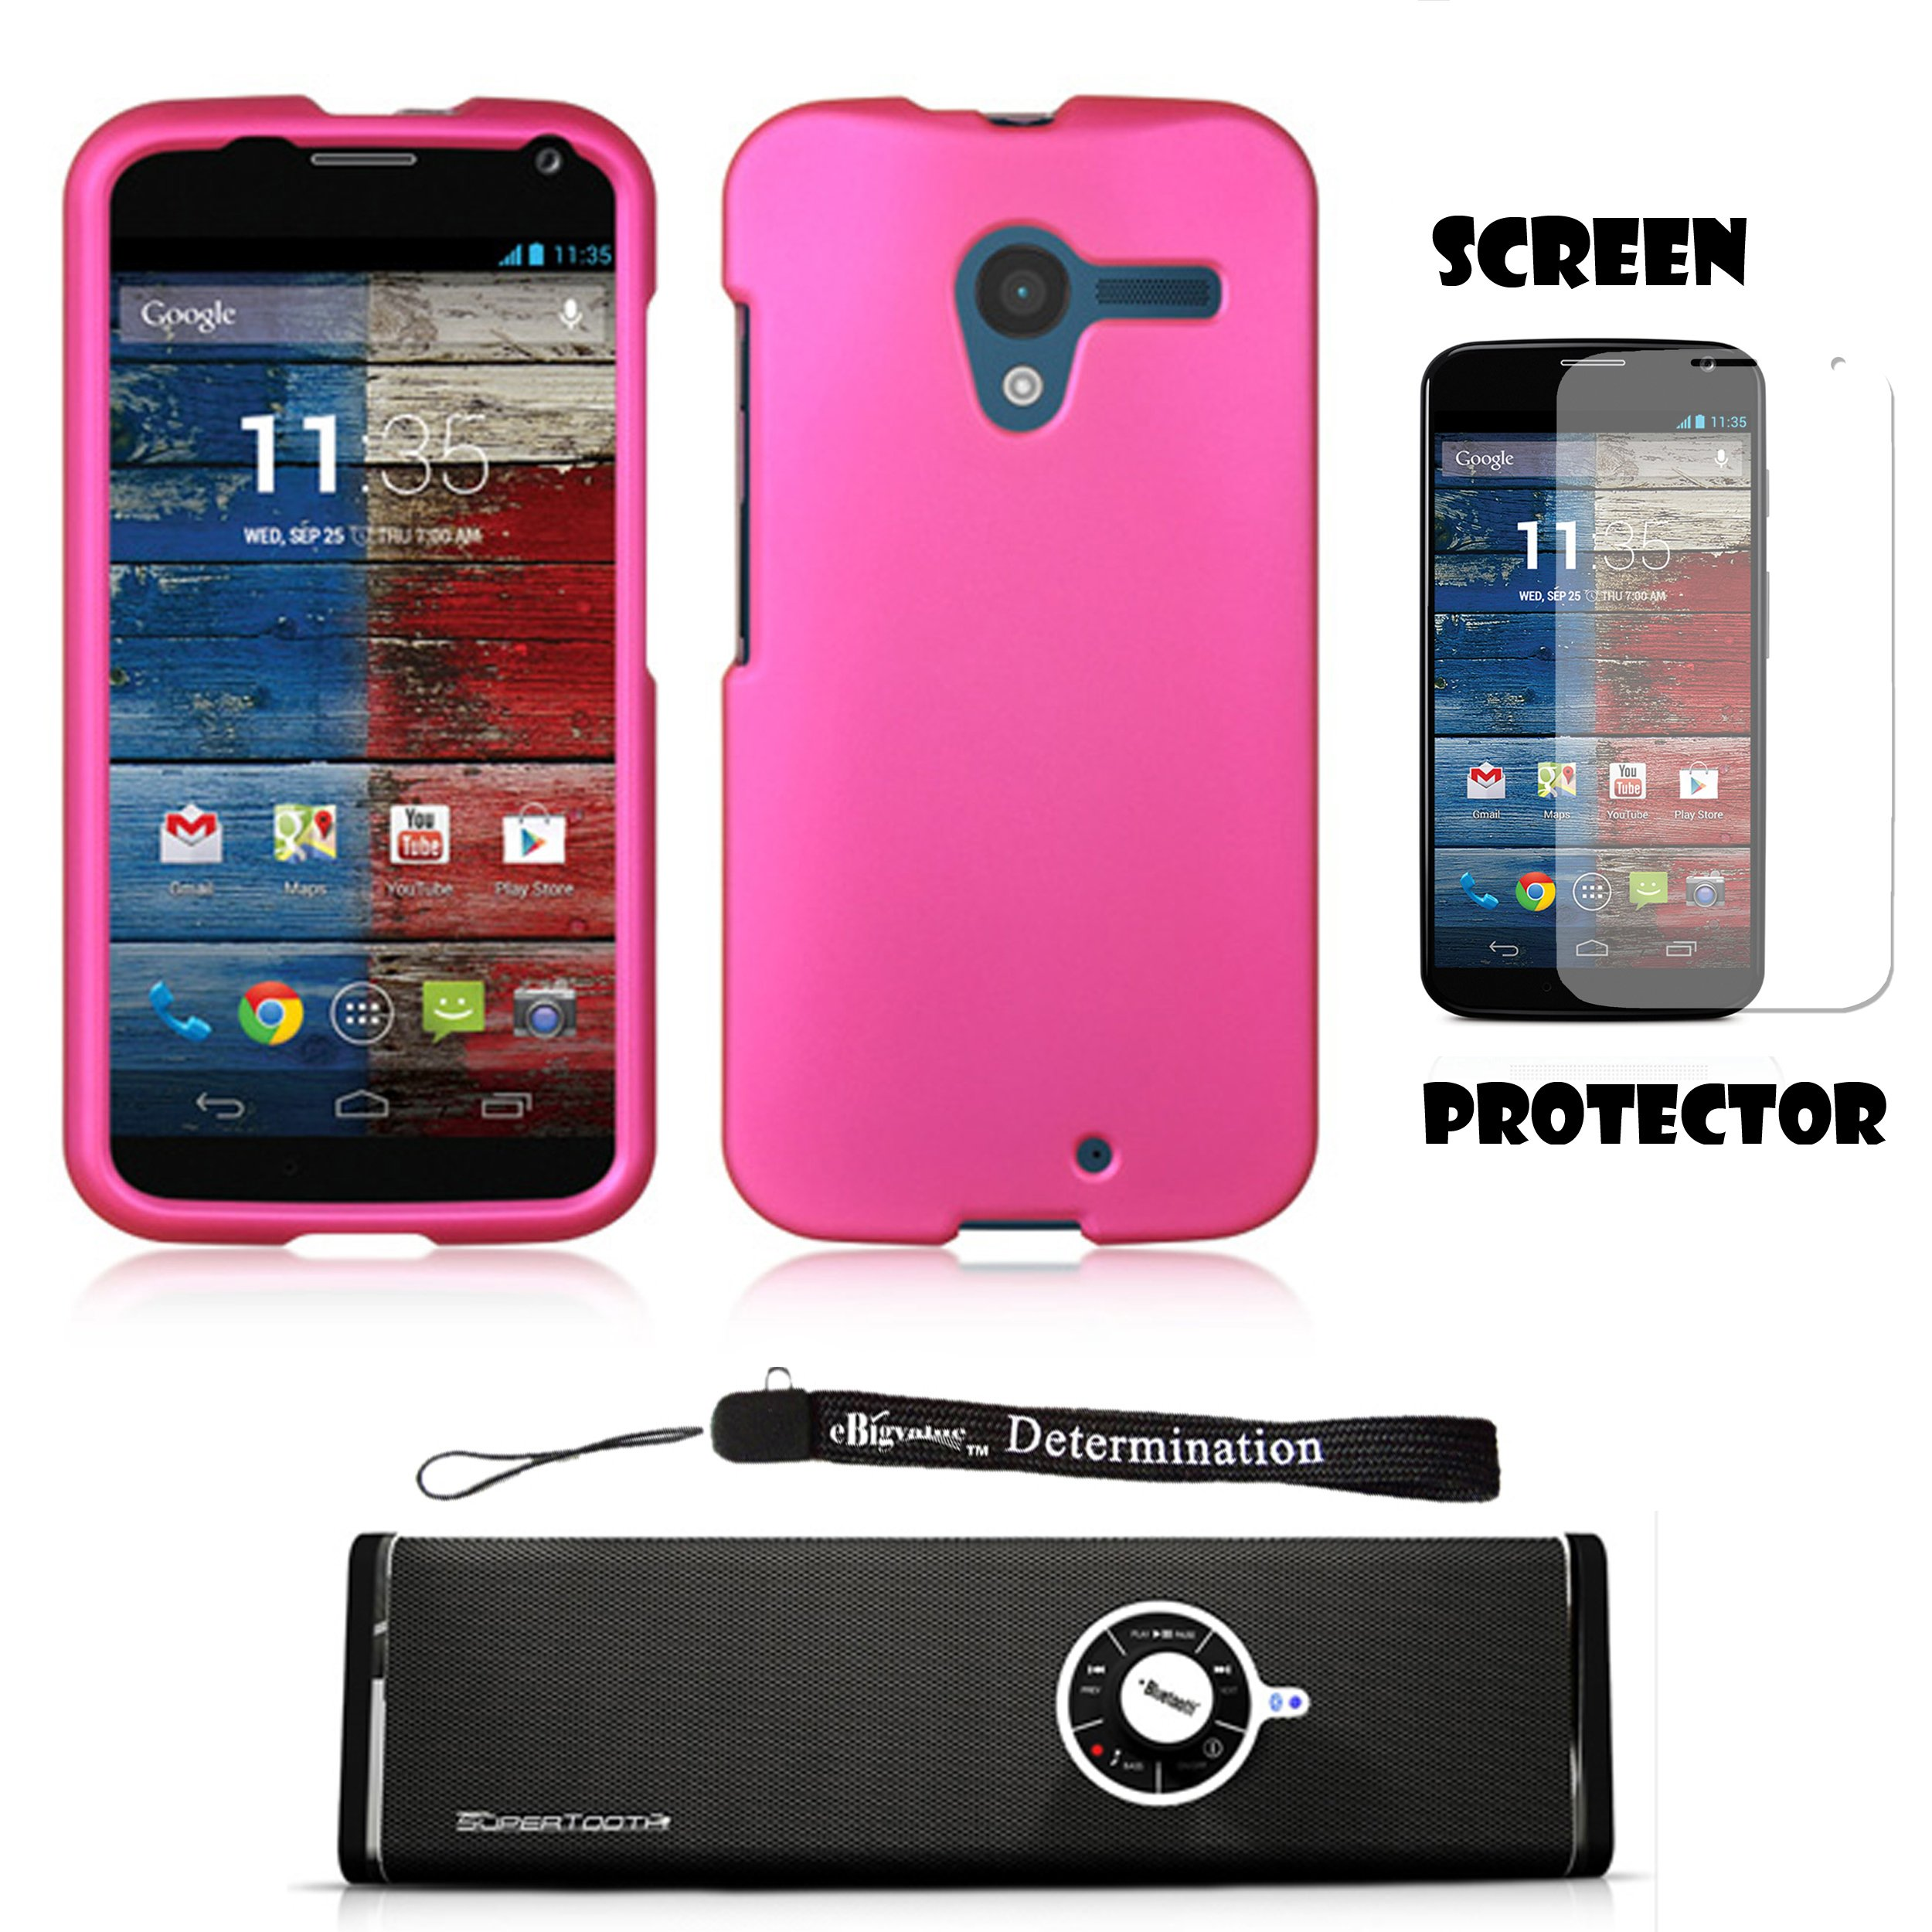 Magenta Premium Hard Design Crystal Case Snap On Cover For Motorola Moto X Android OS V4 2.2 (Jelly Bean) + Motorola Moto X Clear Screen Protector + Supertooth Disco Bluetooth Speaker with AUX Cable + an eBigValue Determination Hand Strap by eBigValue